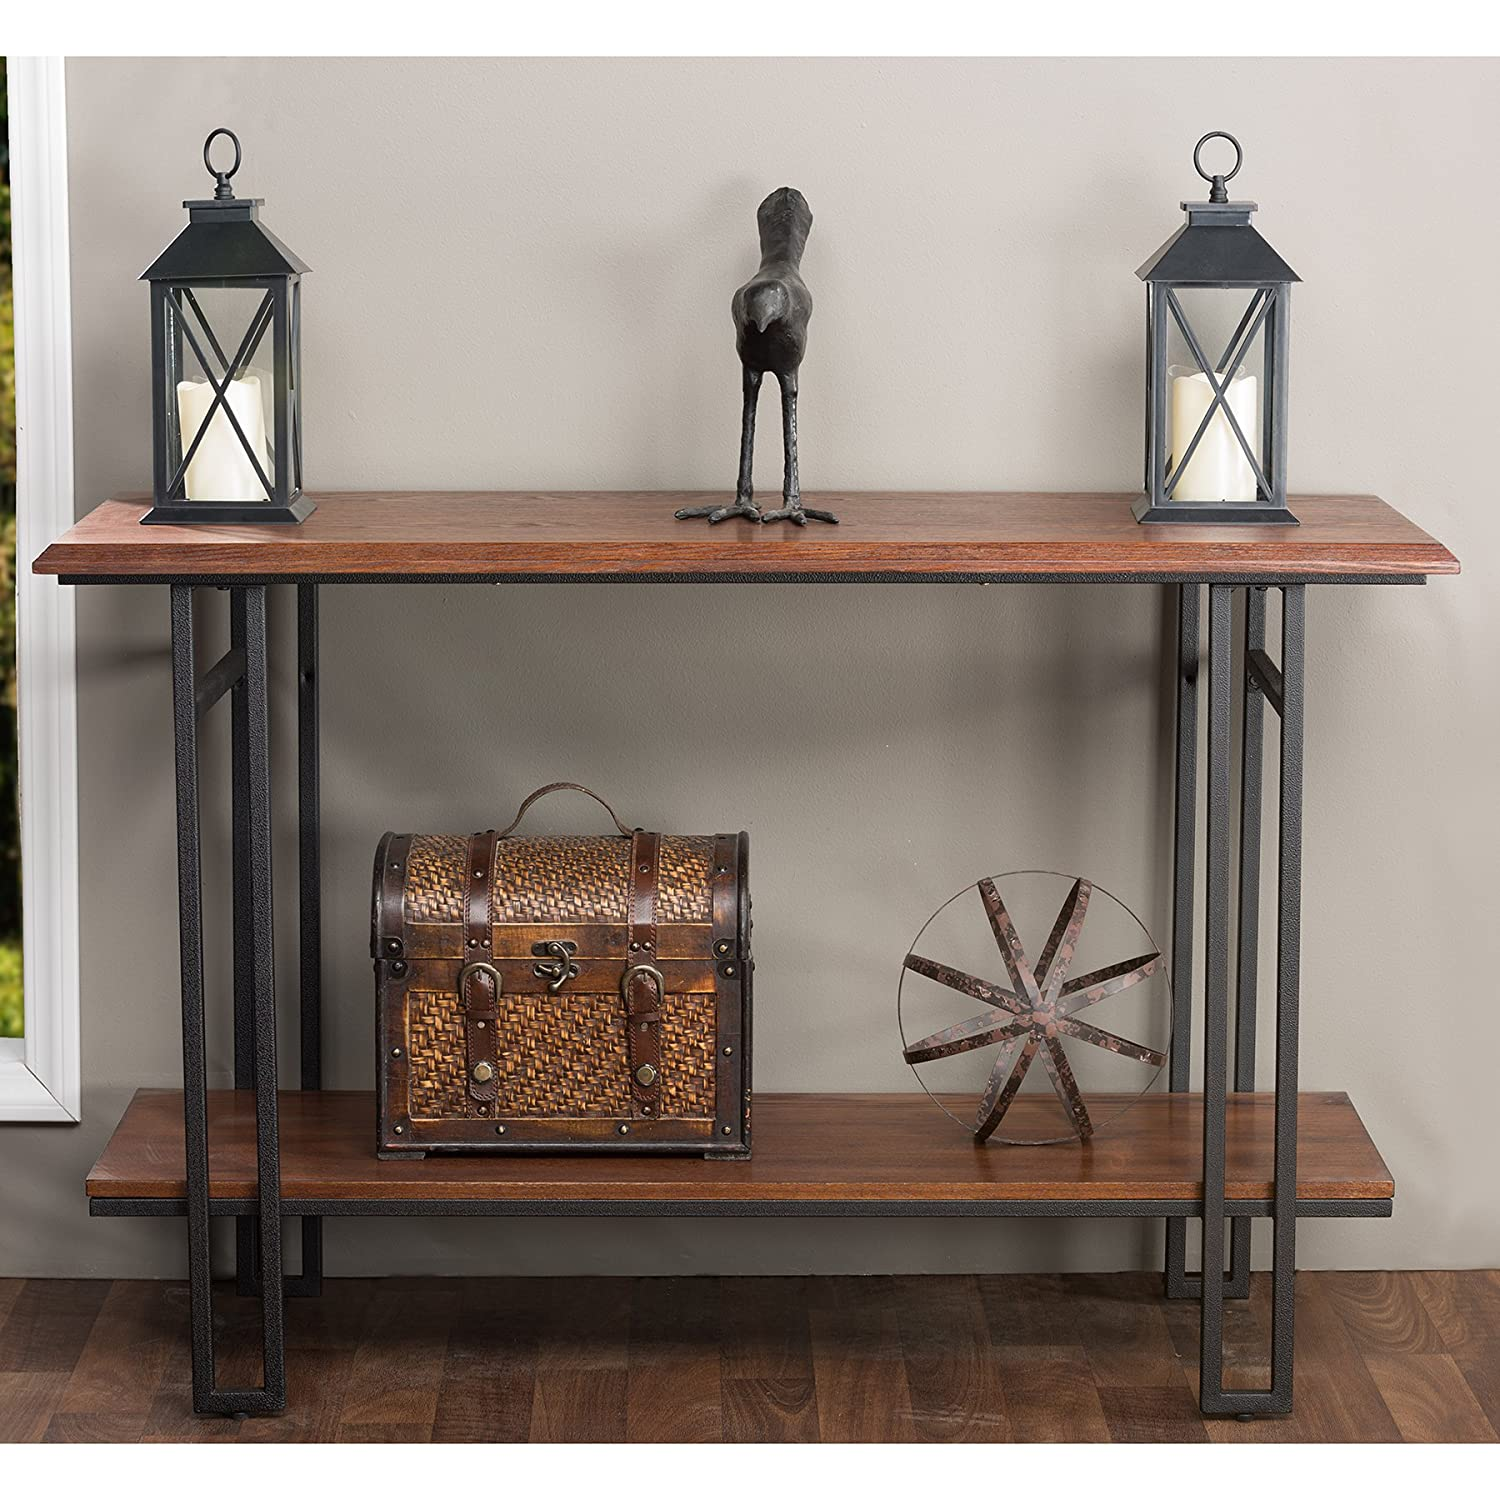 Amazon baxton studio newcastle wood and metal console table amazon baxton studio newcastle wood and metal console table brown kitchen dining geotapseo Gallery